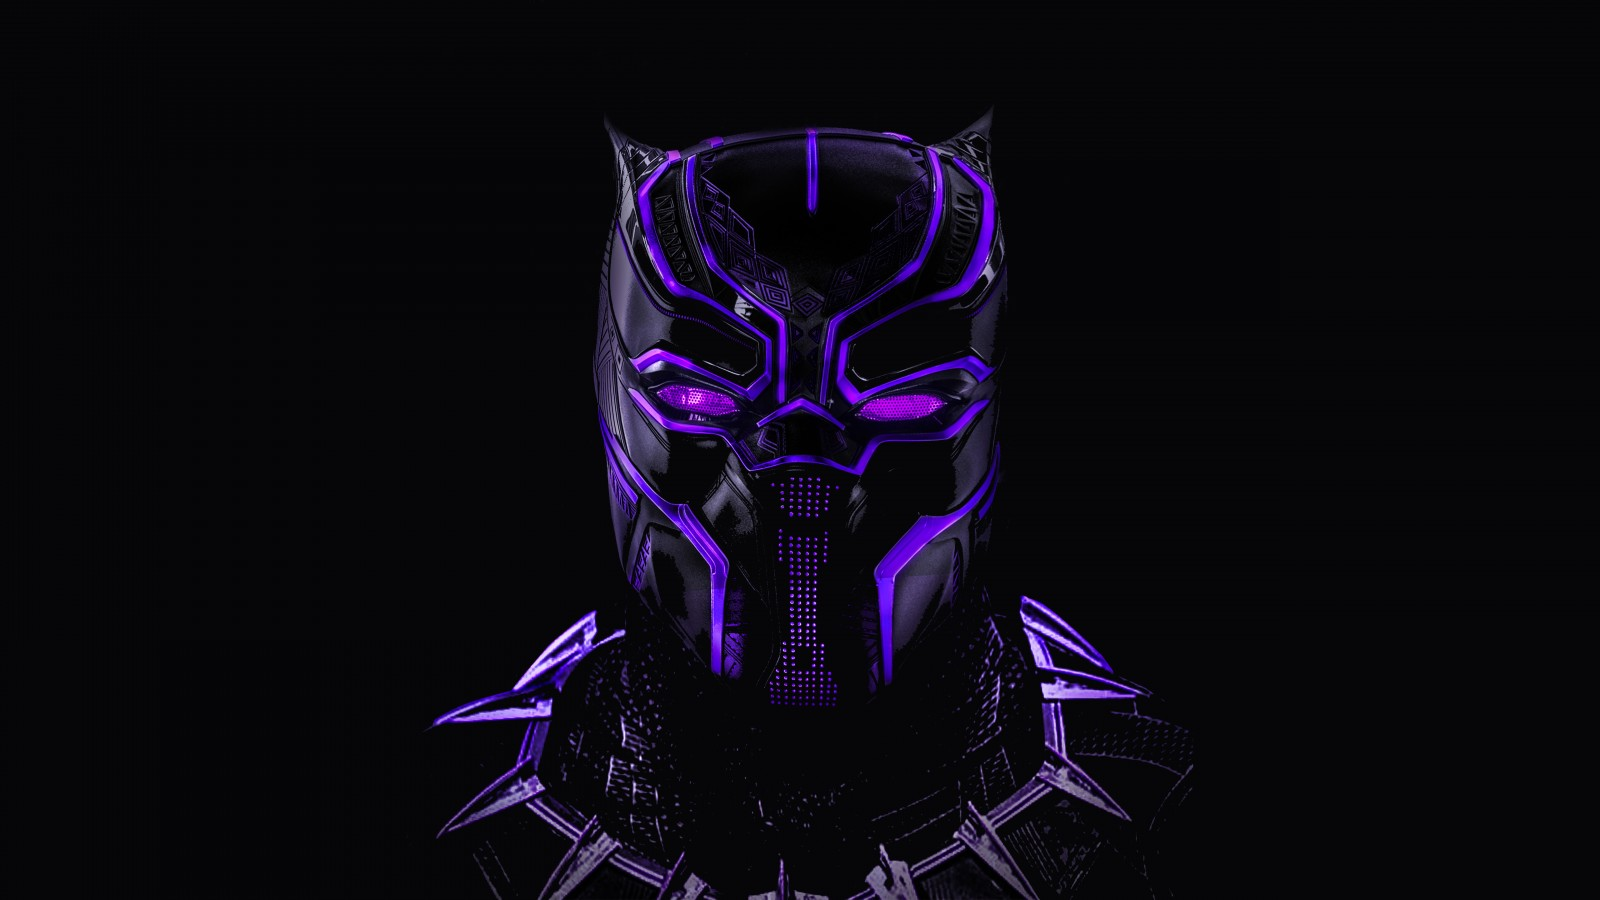 3d Panther Wallpapers Black Panther Neon Artwork 5k Wallpapers Hd Wallpapers